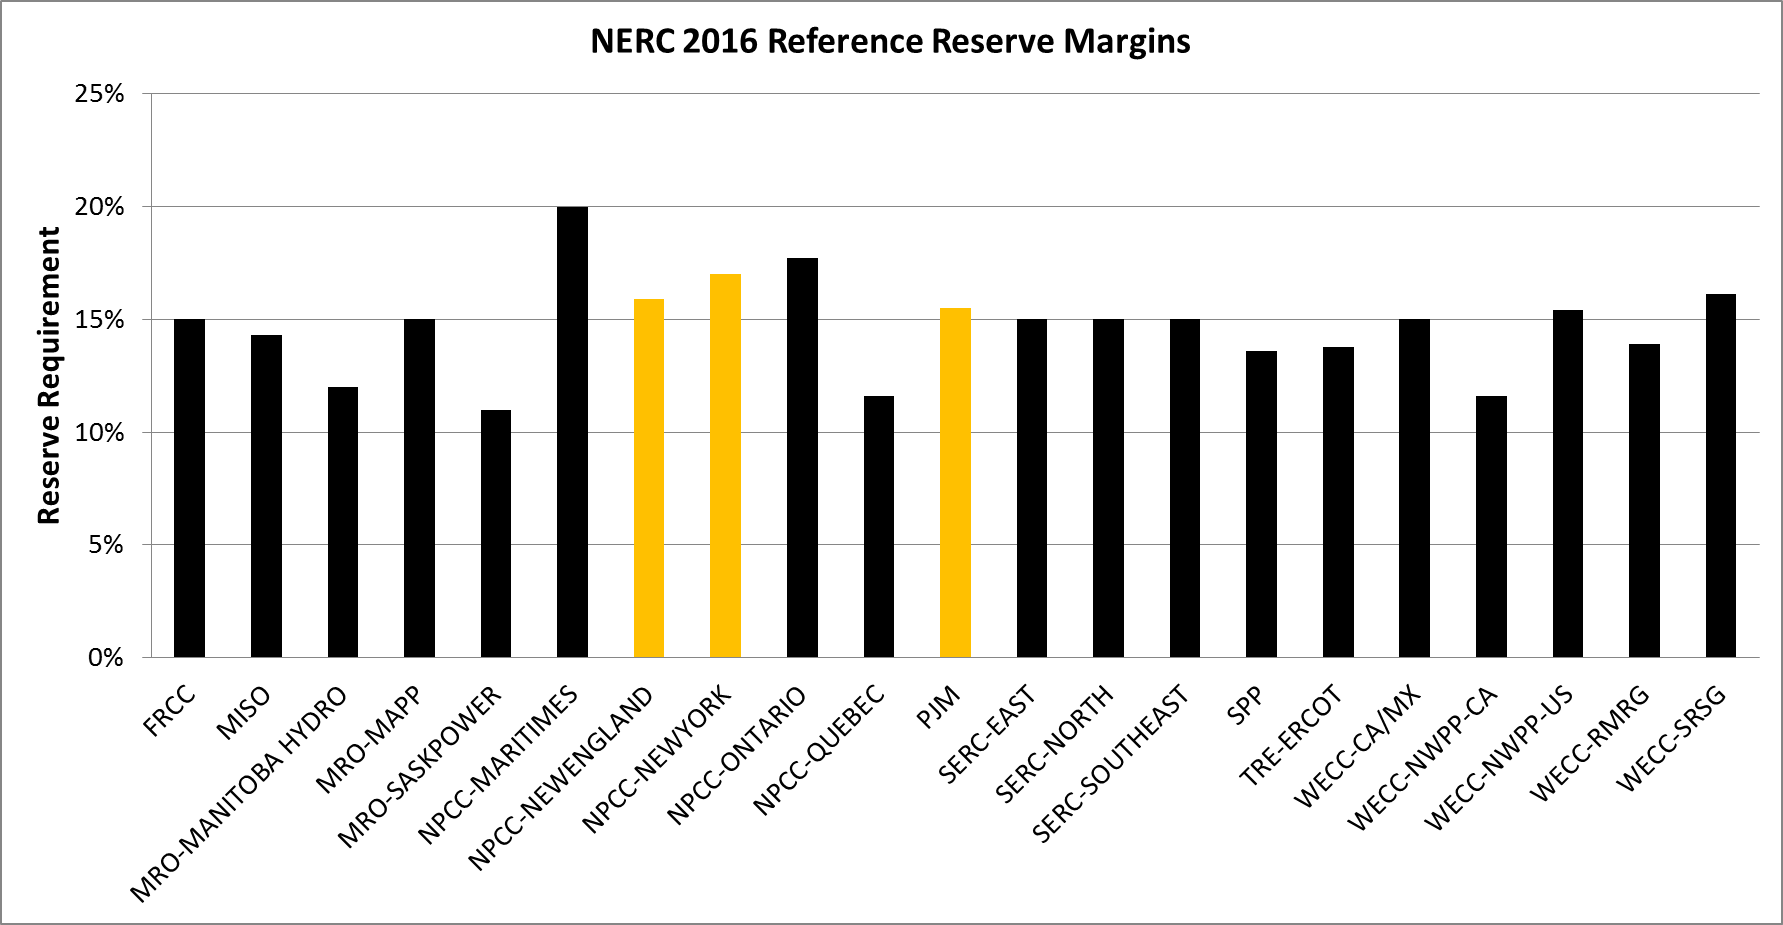 Reserve margins epis nerc reference margins graph publicscrutiny Image collections